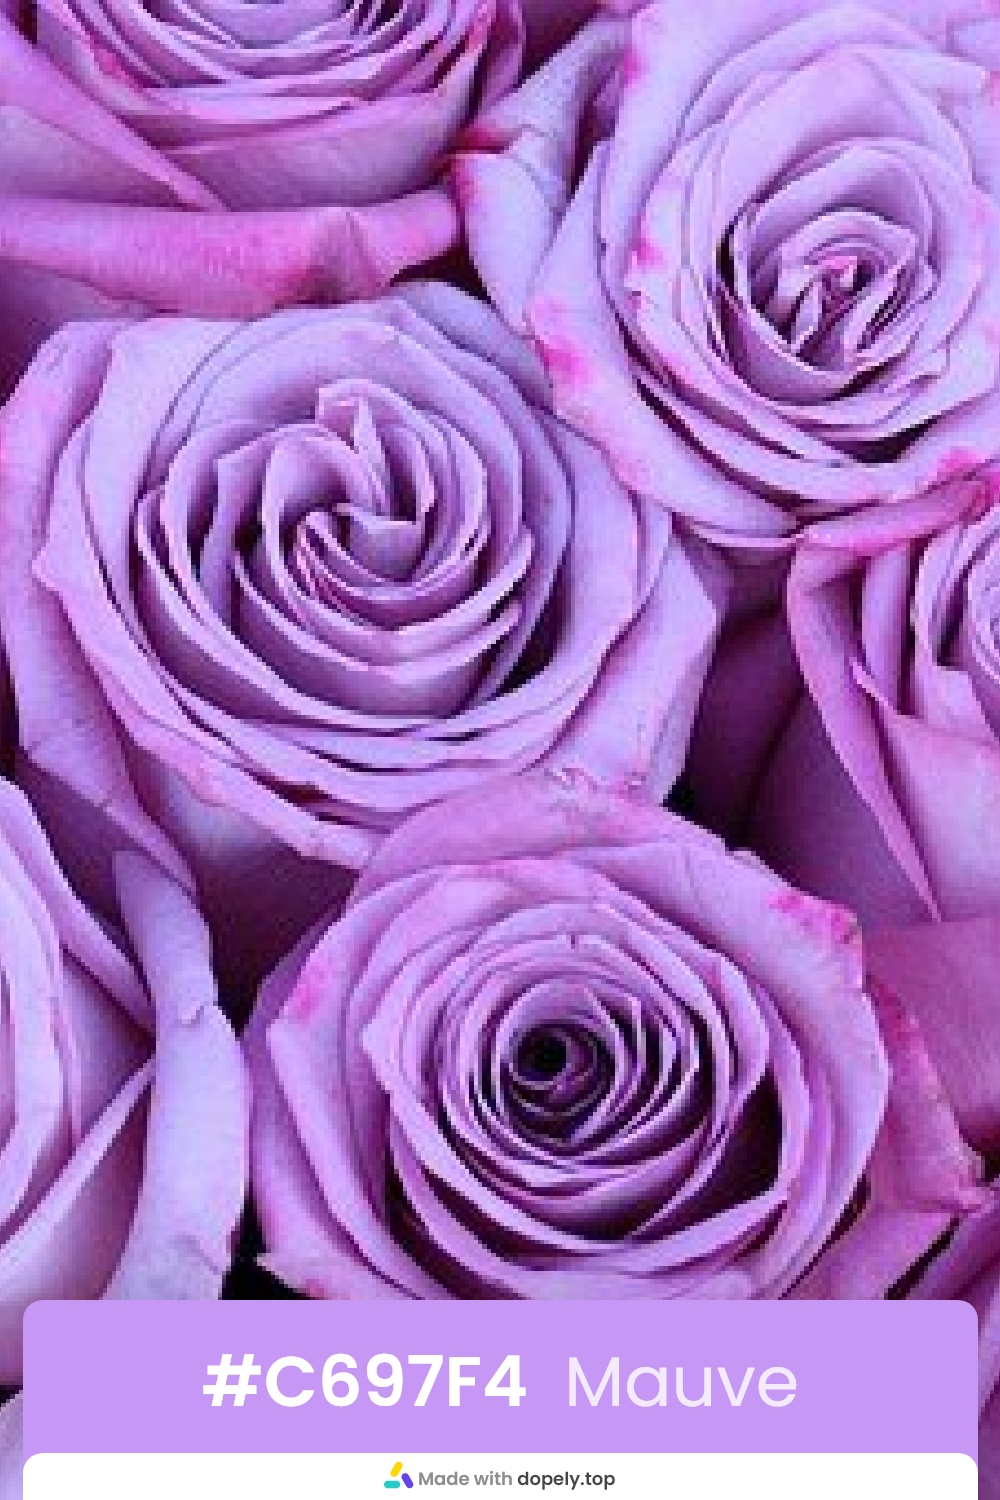 Mauve color rose flower with hex code